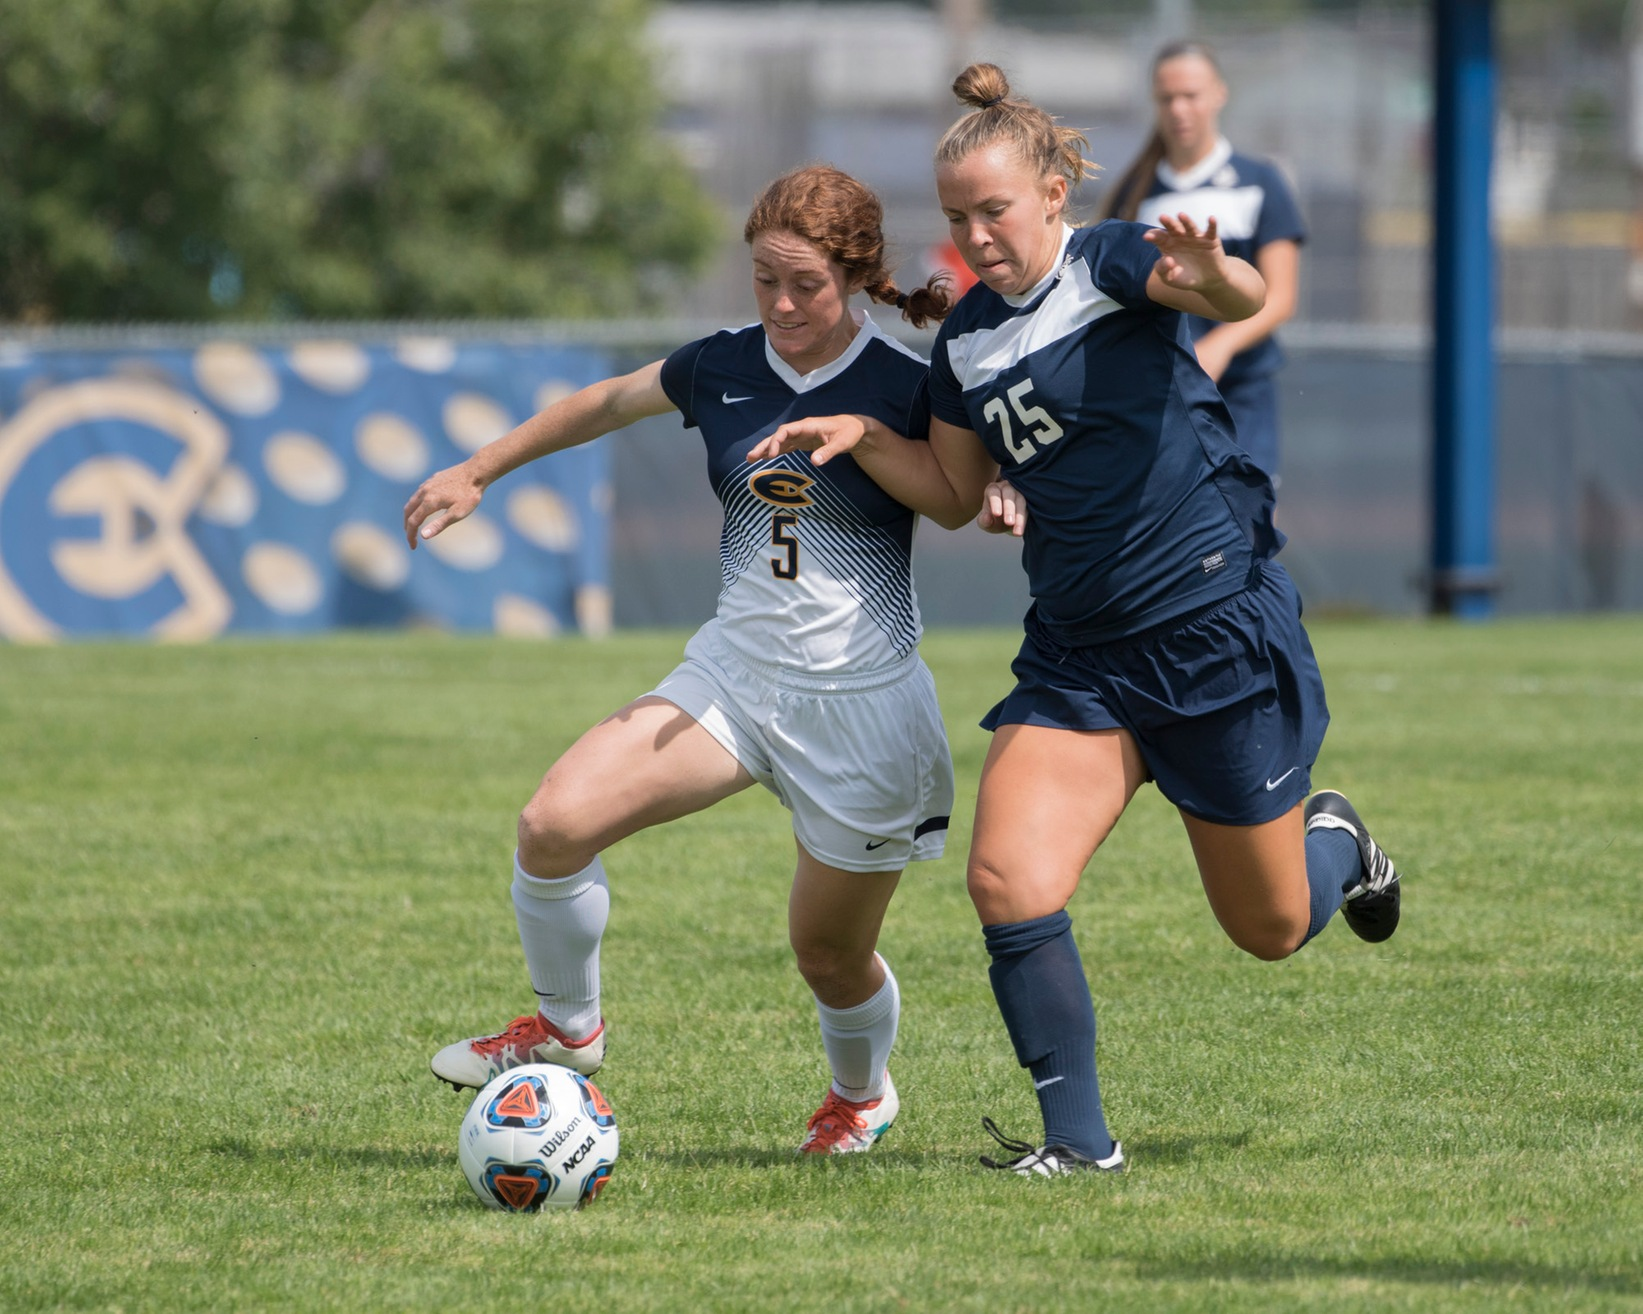 Blugolds draw with Pointers